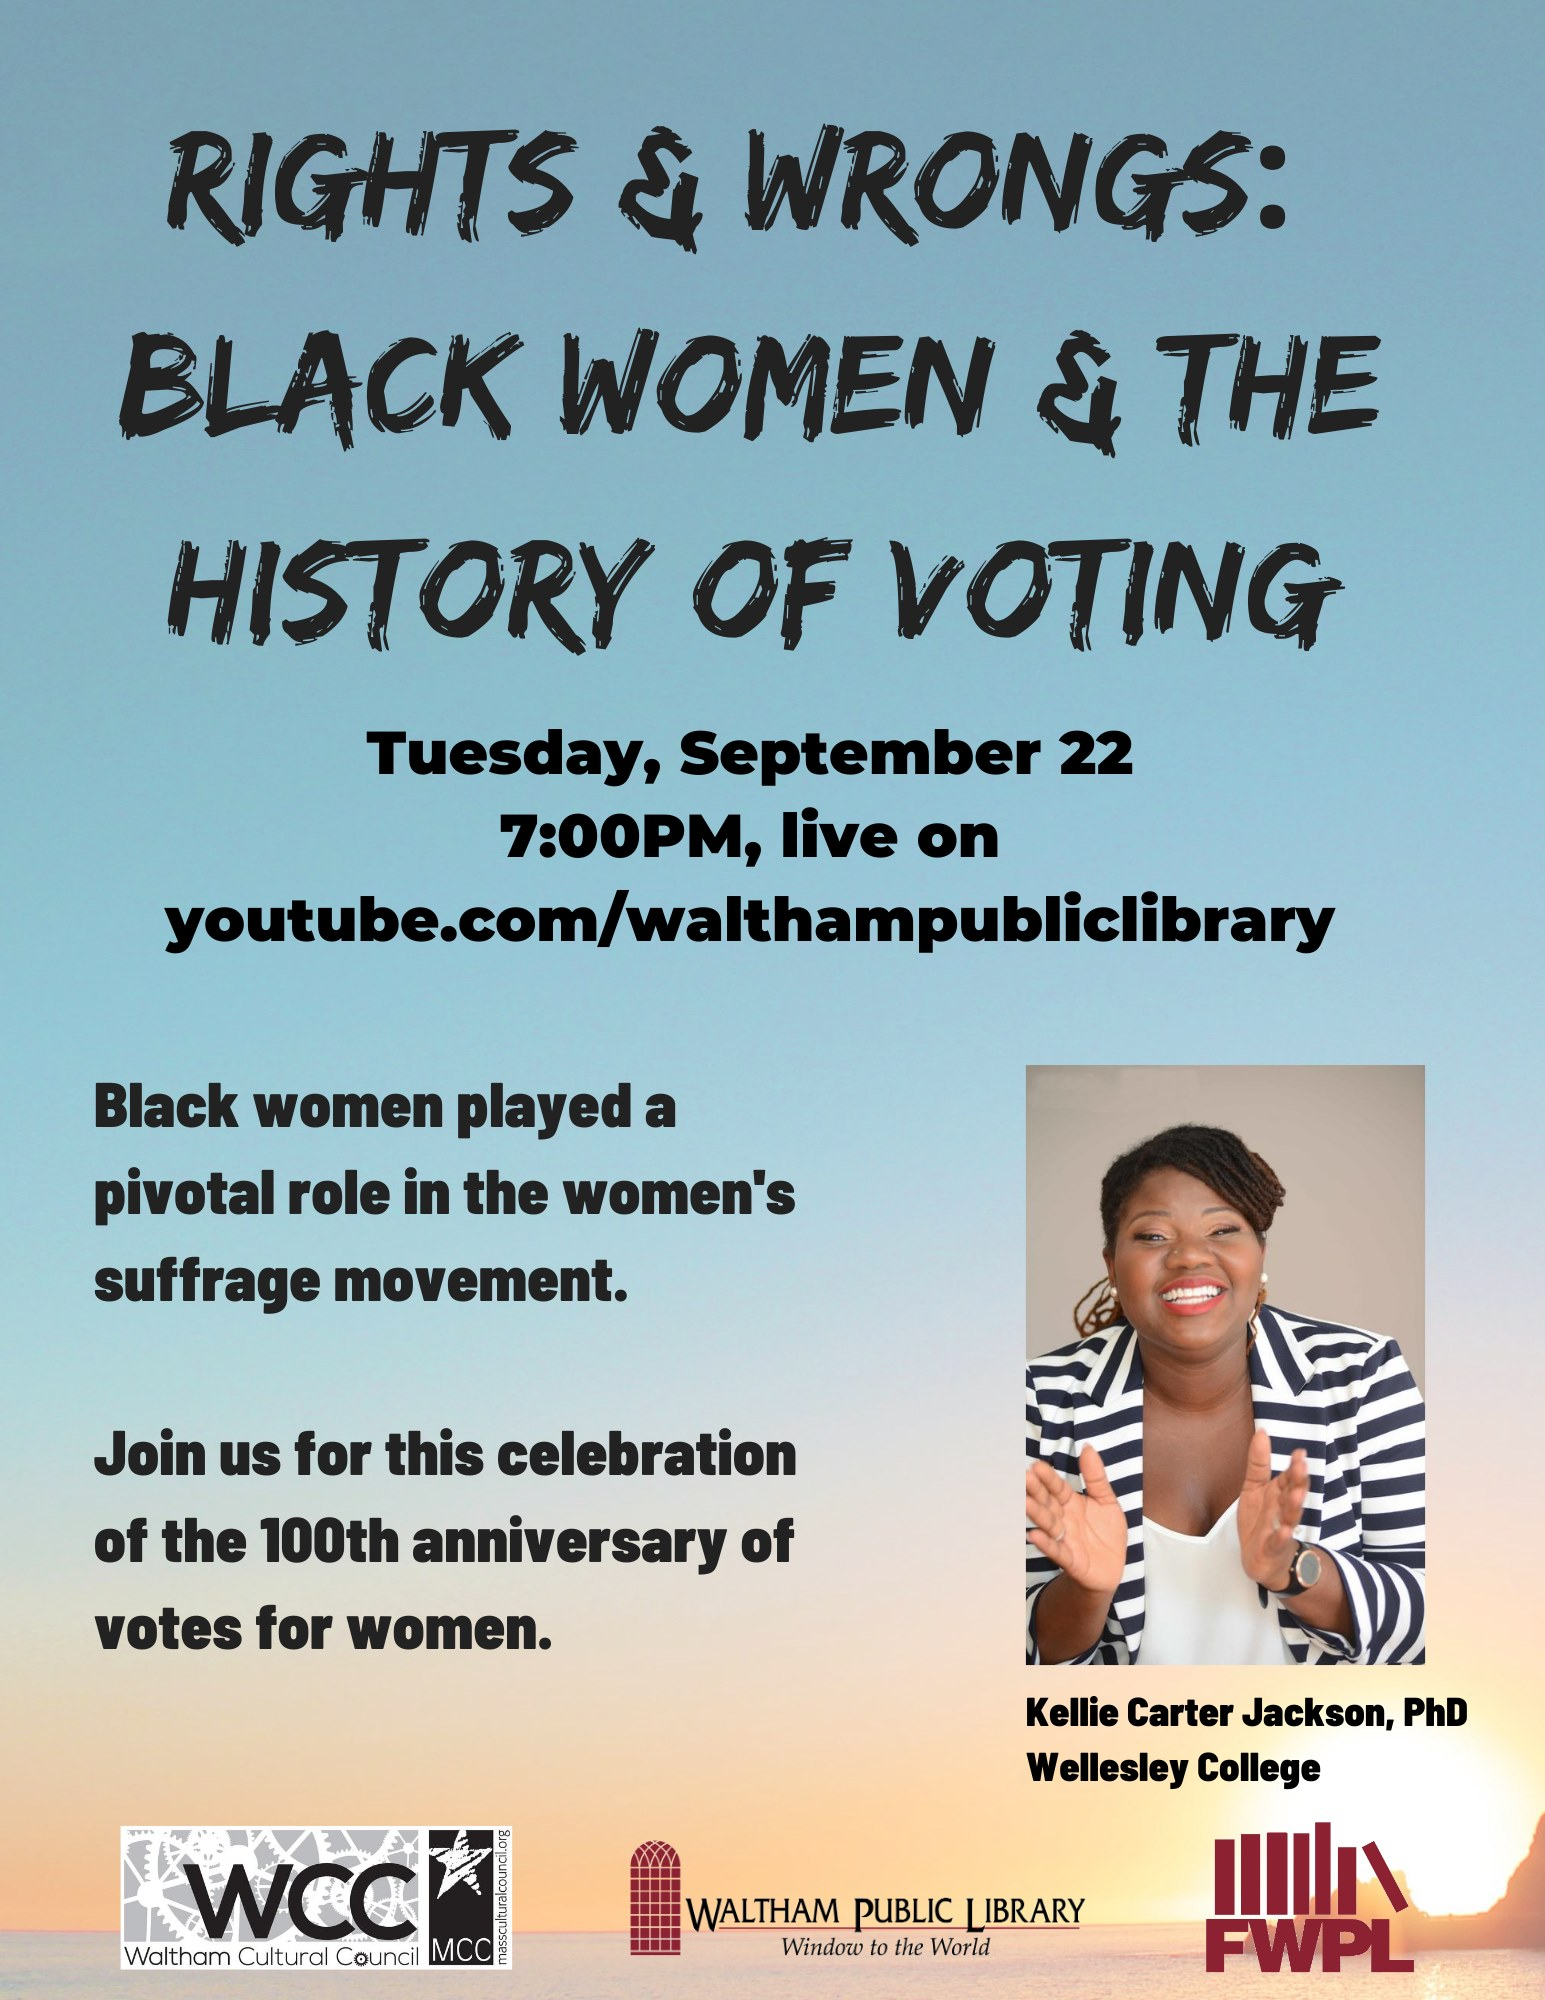 Waltham Public Library presents Black Women and the History of Voting by Kellie Carter Jackson